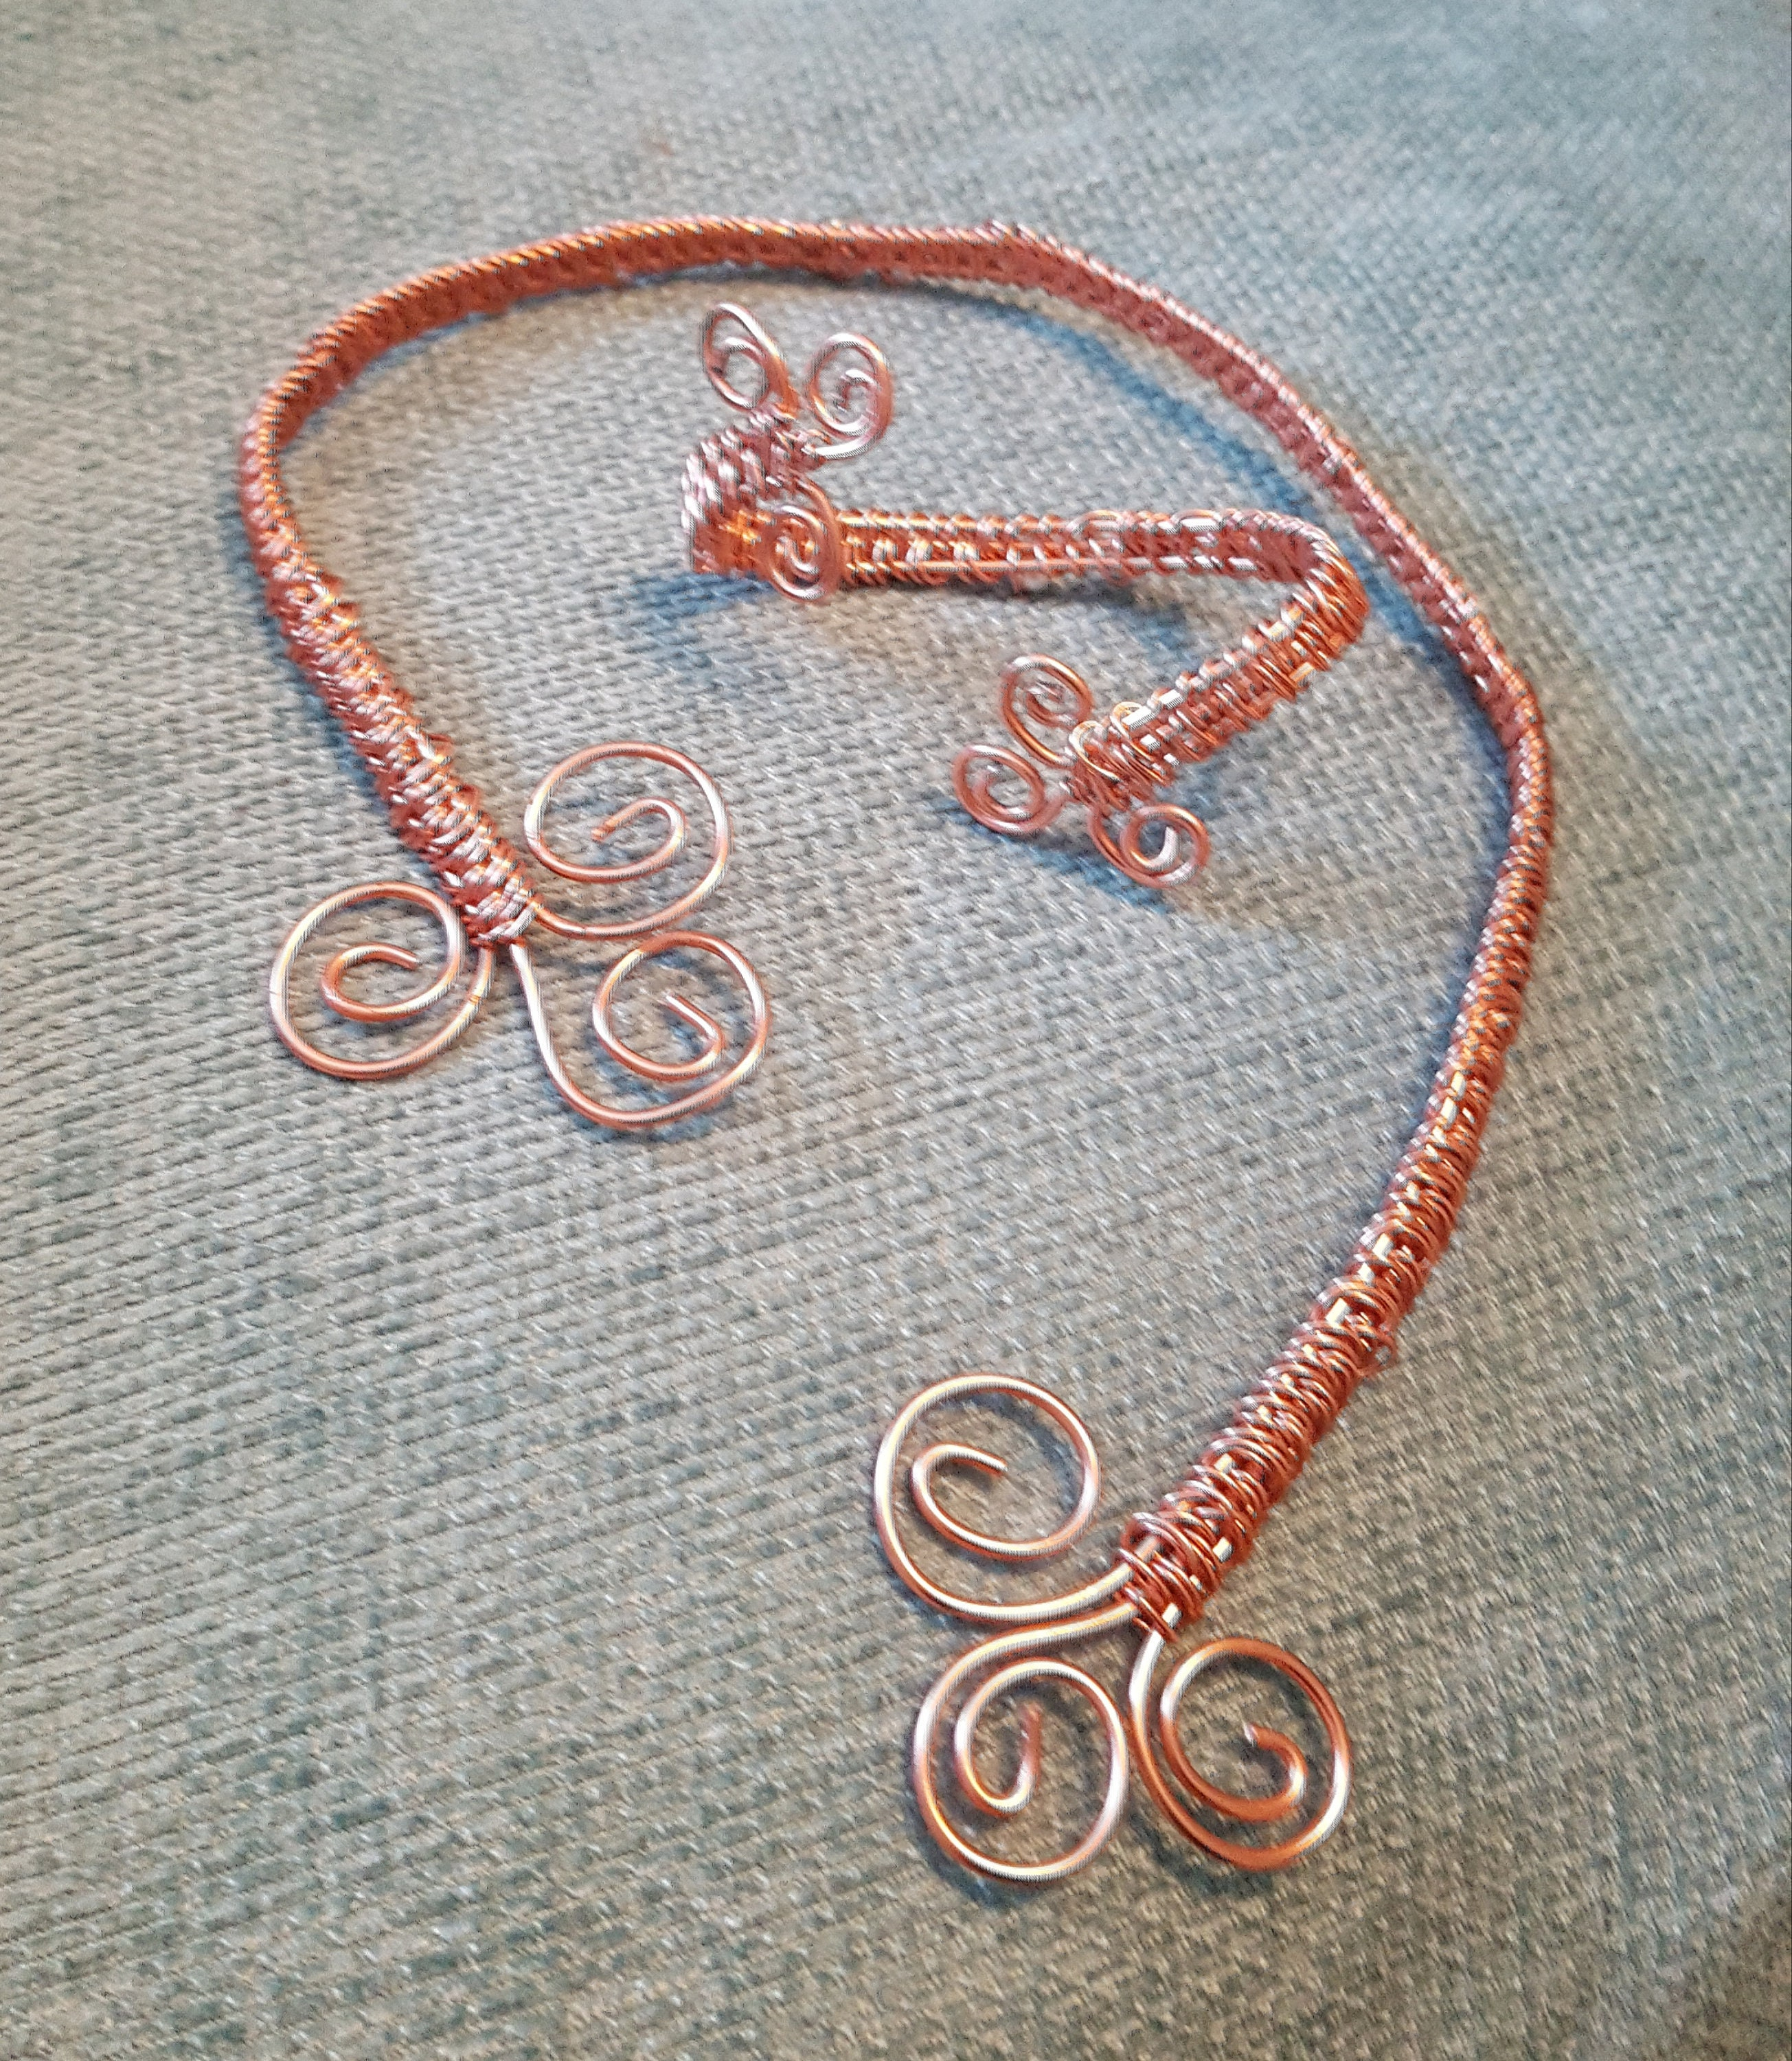 Real Copper Wire Twist Torque Style Neclace and Hand/Wrist Cuff.